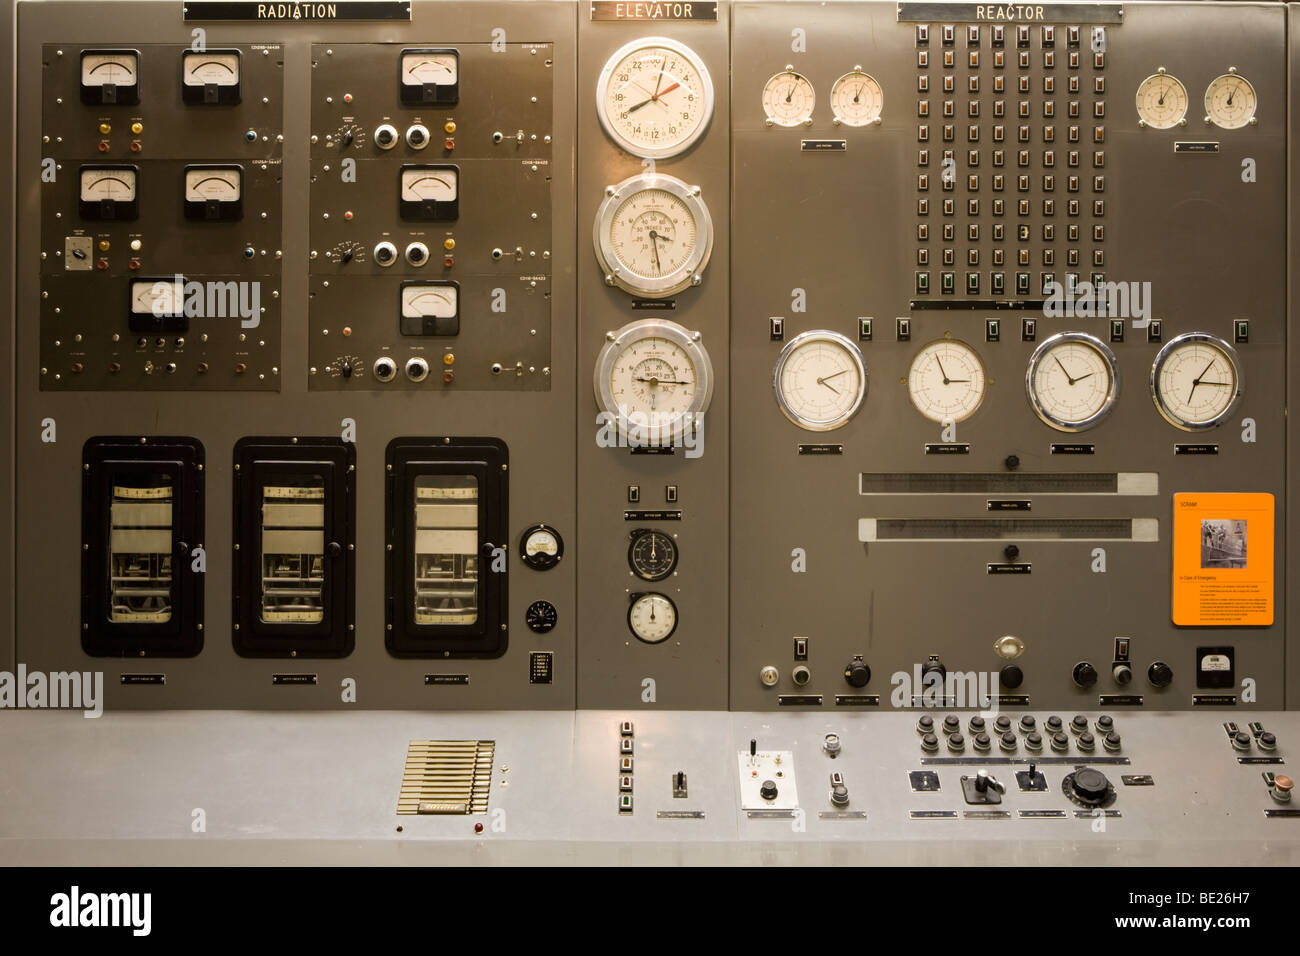 Dials and gauges at EBR1 in Atomic City, Idaho, first nuclear power plant in world. - Stock Image